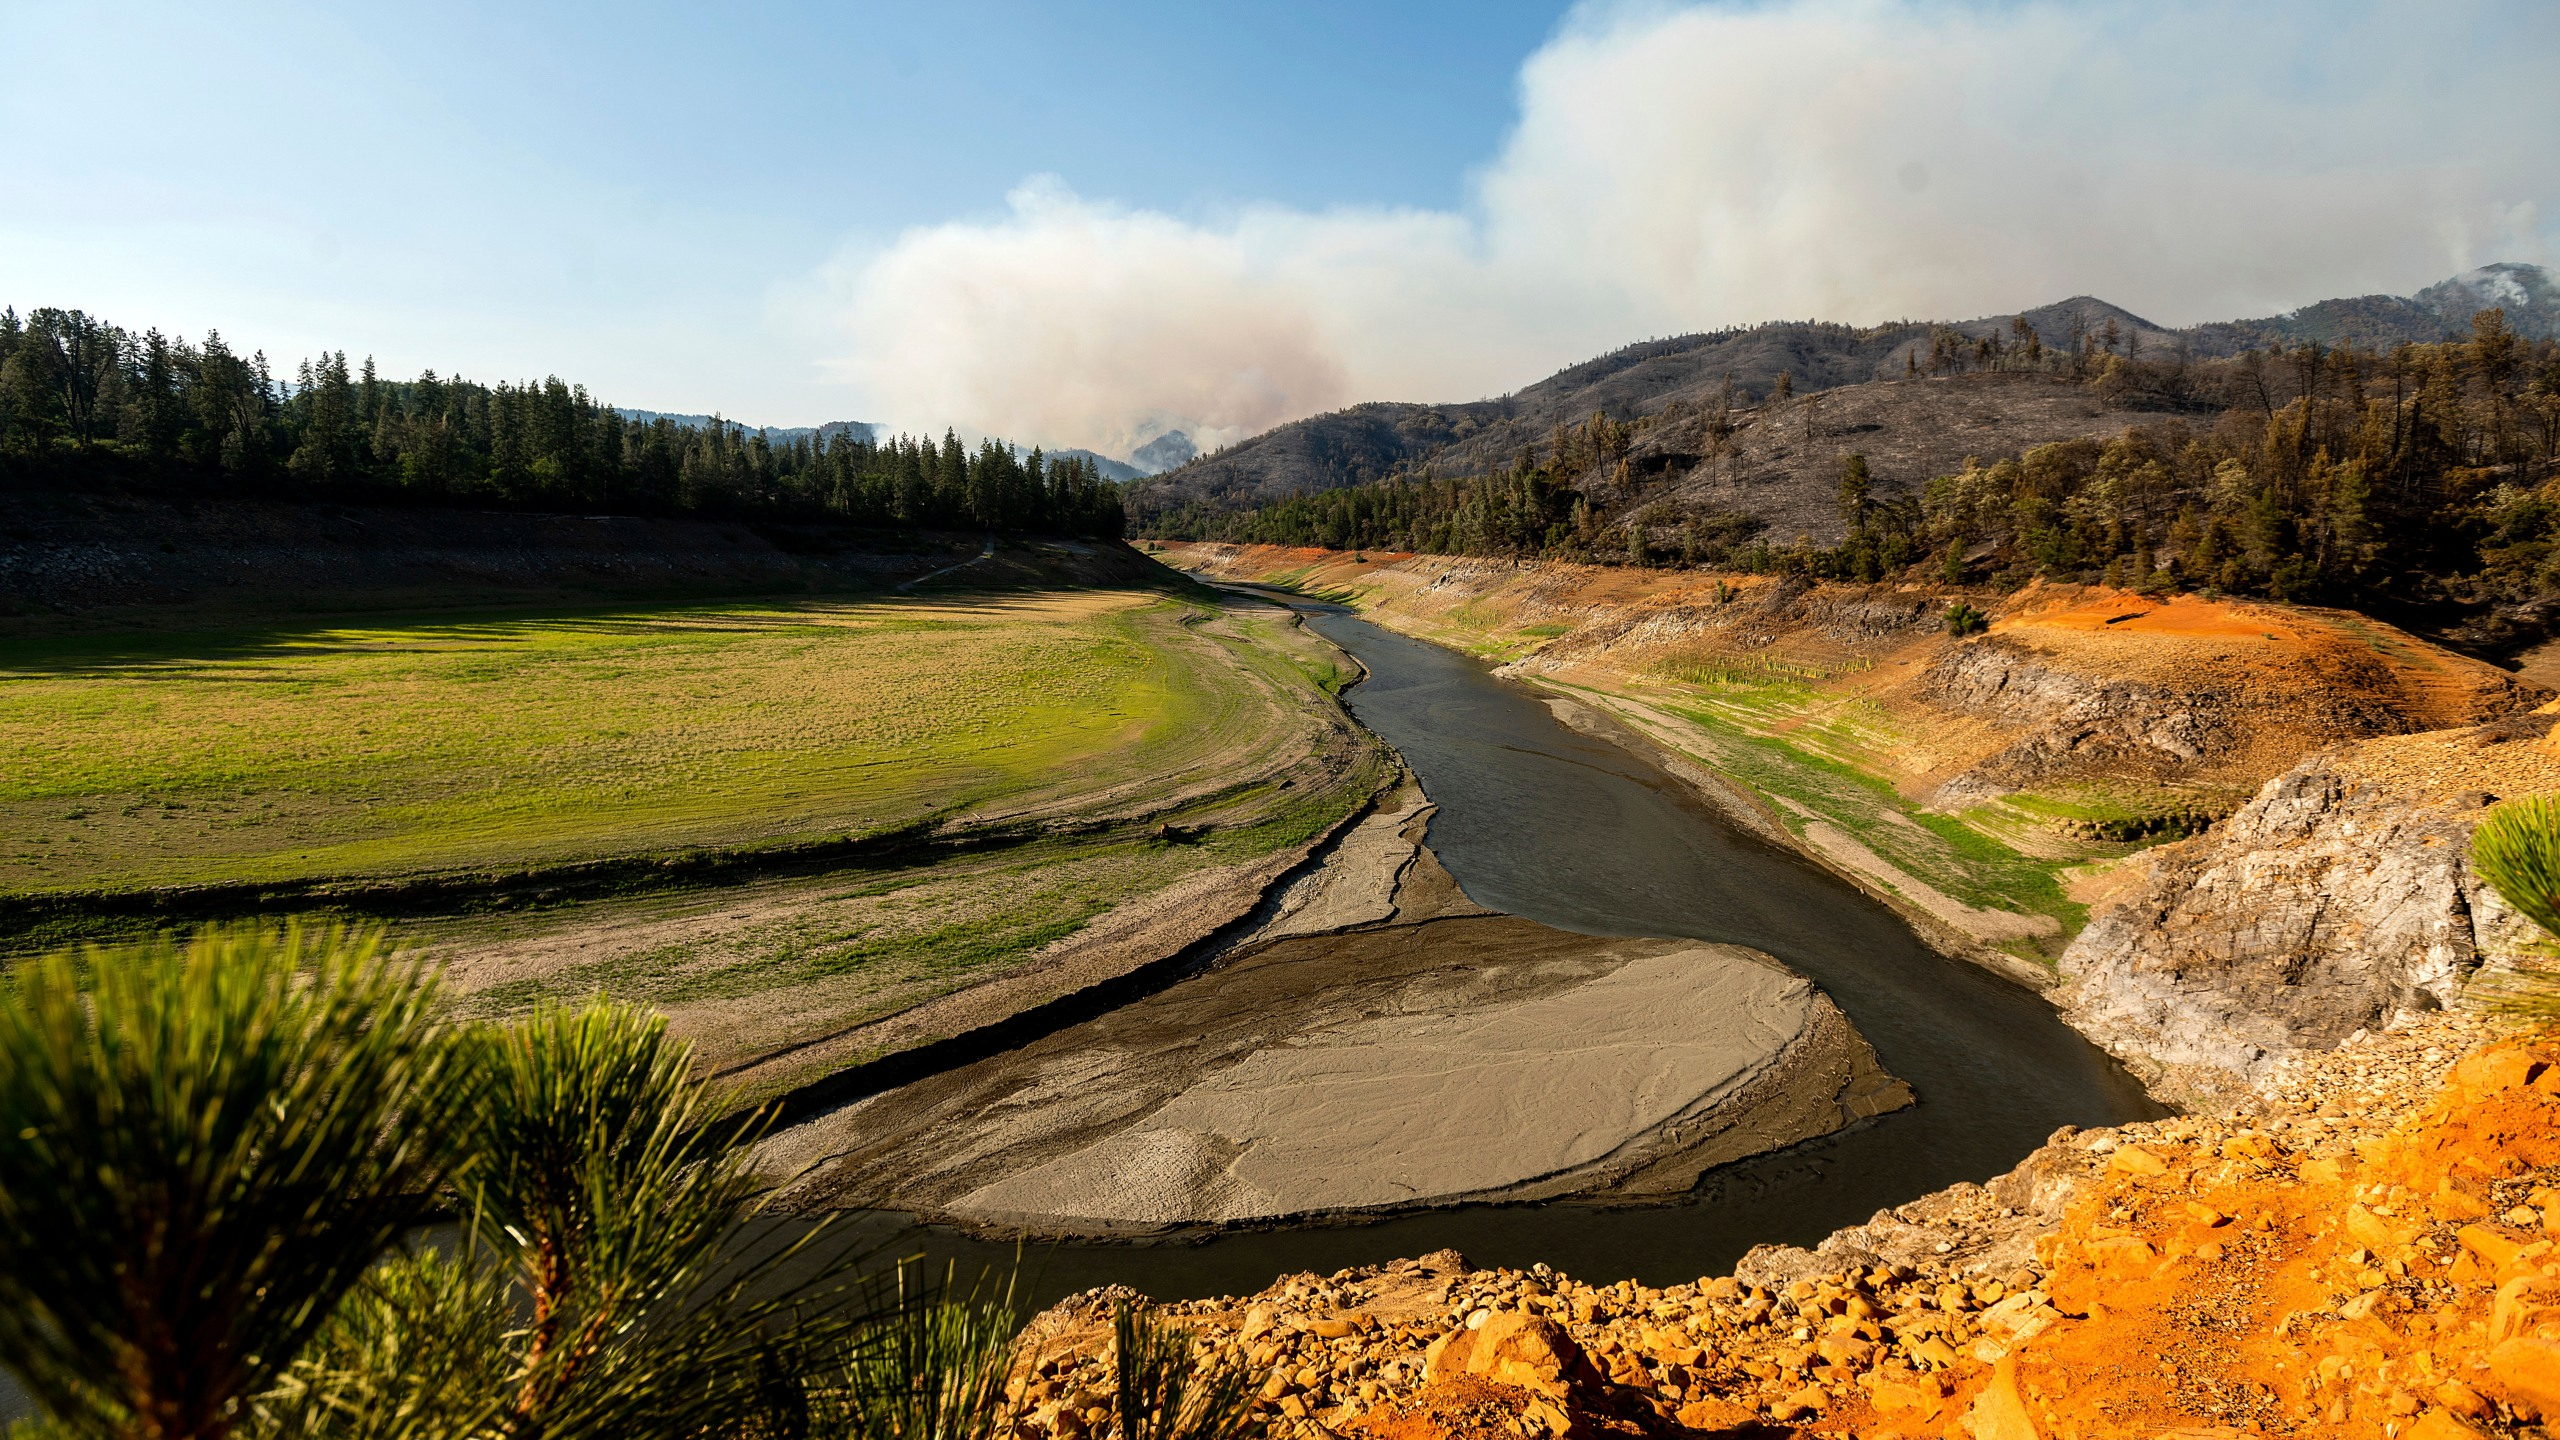 Smoke from the Salt Fire rises above Lake Shasta, which was at 38 percent of capacity at the time of this photo, on Friday, July 2, 2021, in unincorporated Shasta County, Calif. (AP Photo/Noah Berger)